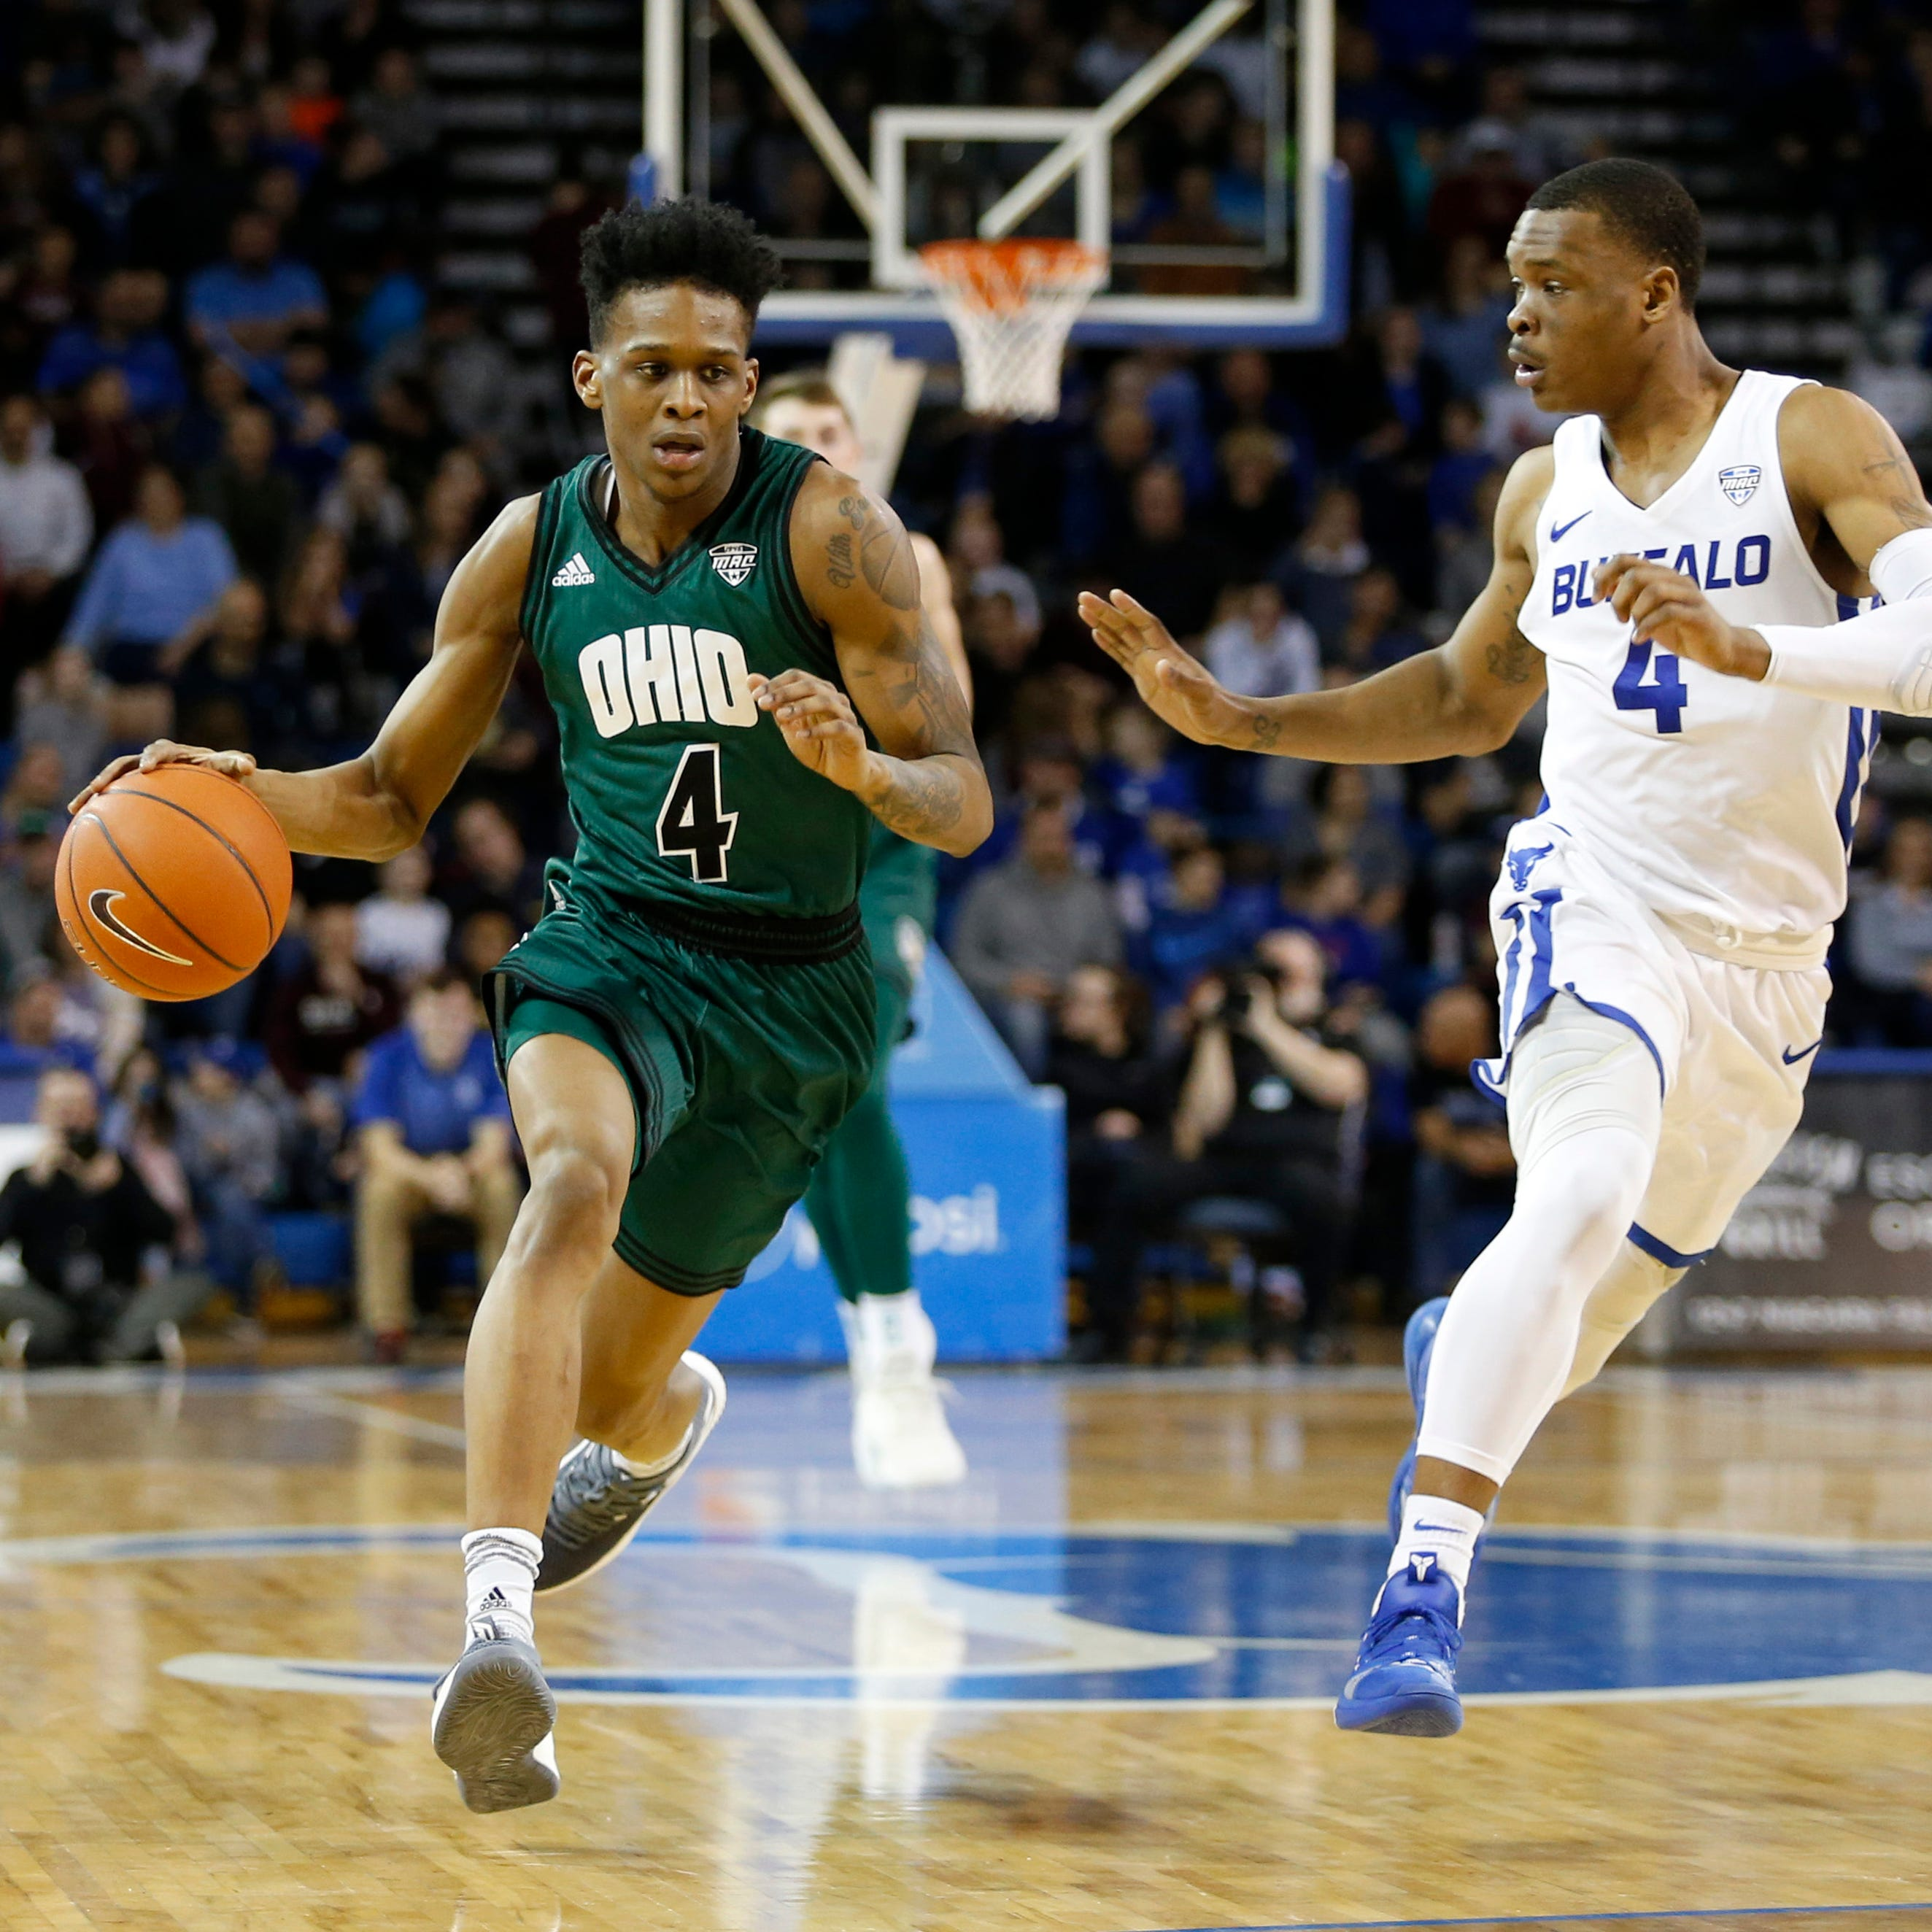 Highly-ranked guard says he'll transfer from Ohio to Colorado State basketball team